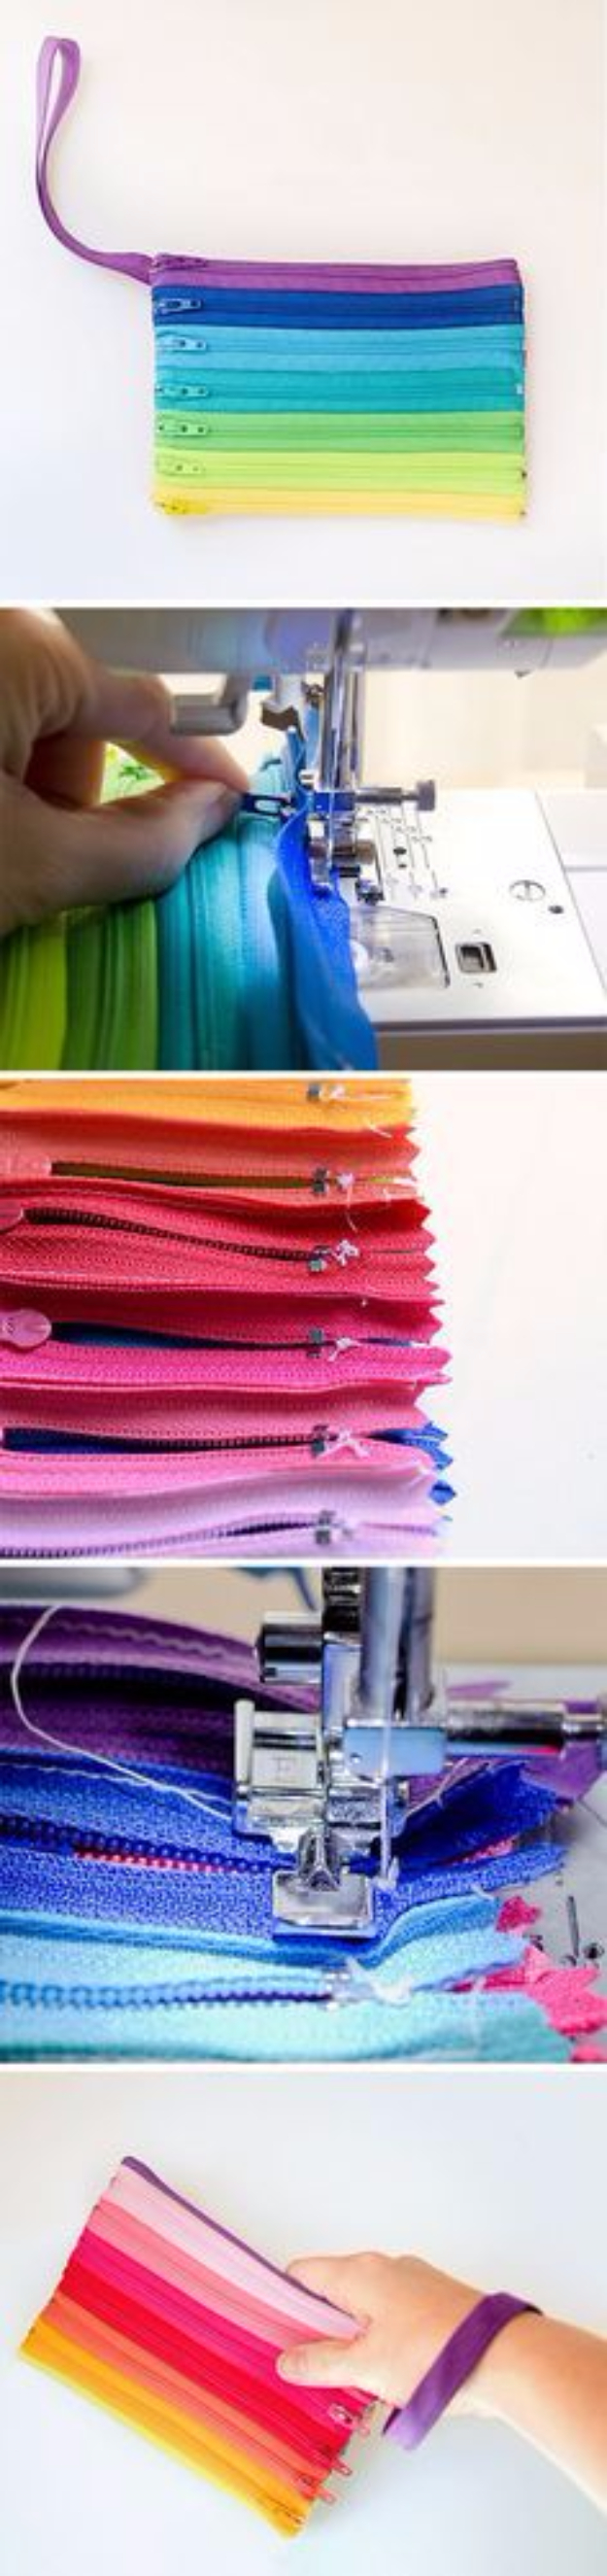 Creative DIY Projects With Zippers - Zippered Clutch - Easy Crafts and Fashion Ideas With A Zipper - Jewelry, Home Decor, School Supplies and DIY Gift Ideas - Quick DIYs for Fun Weekend Projects http://diyjoy.com/diy-projects-zippers